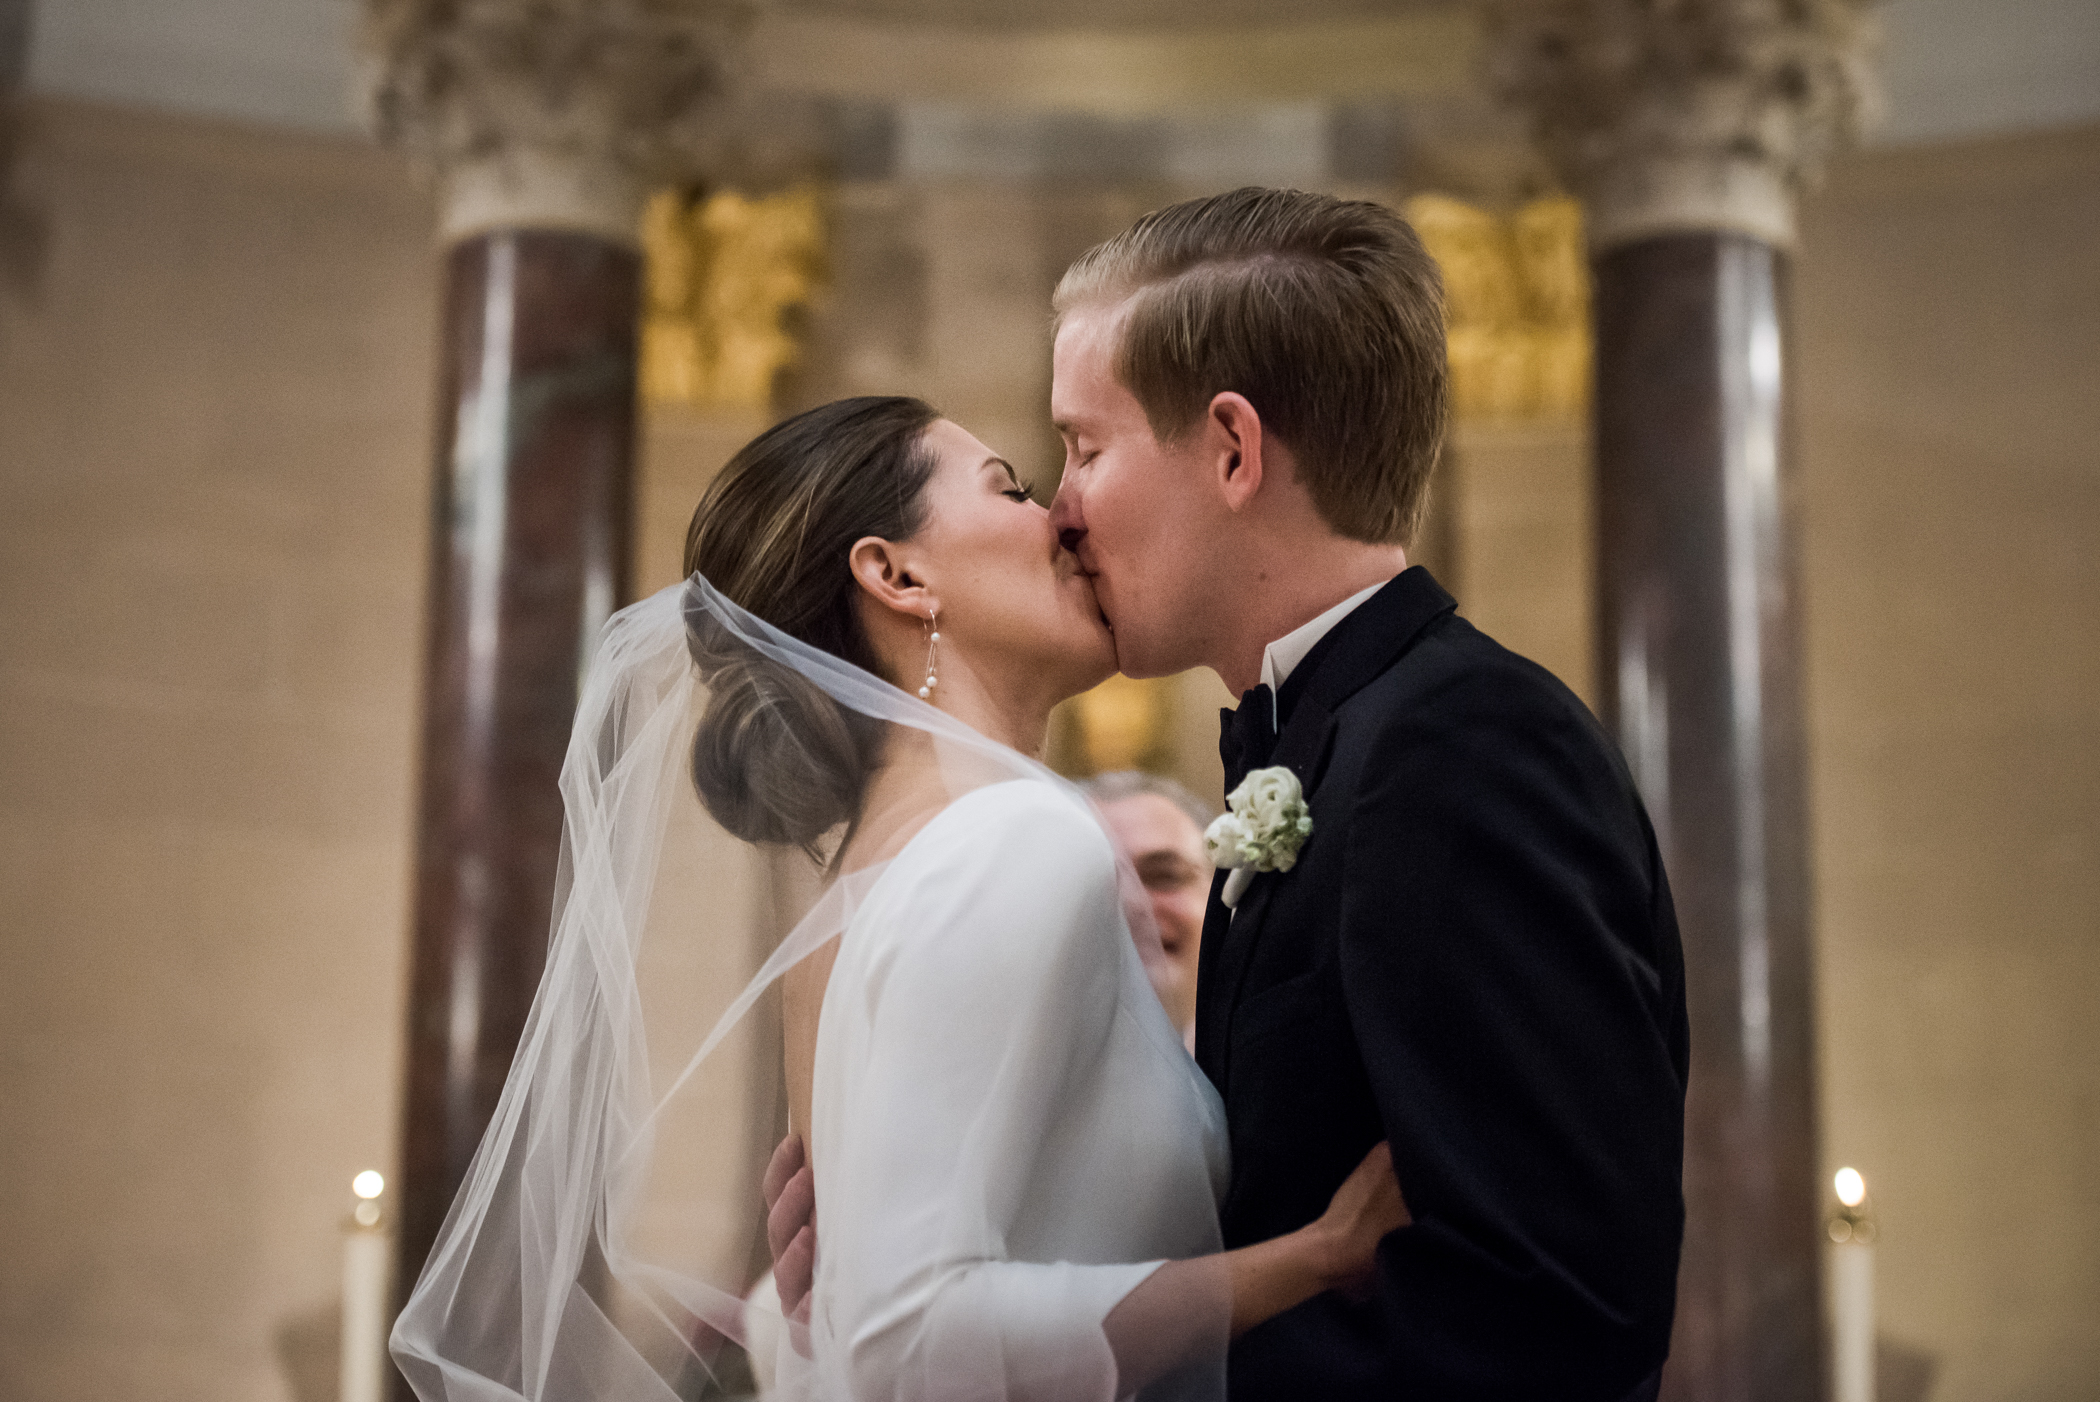 Stefy Hilmer Photography-first kiss at the wedding ceremony in church.jpg